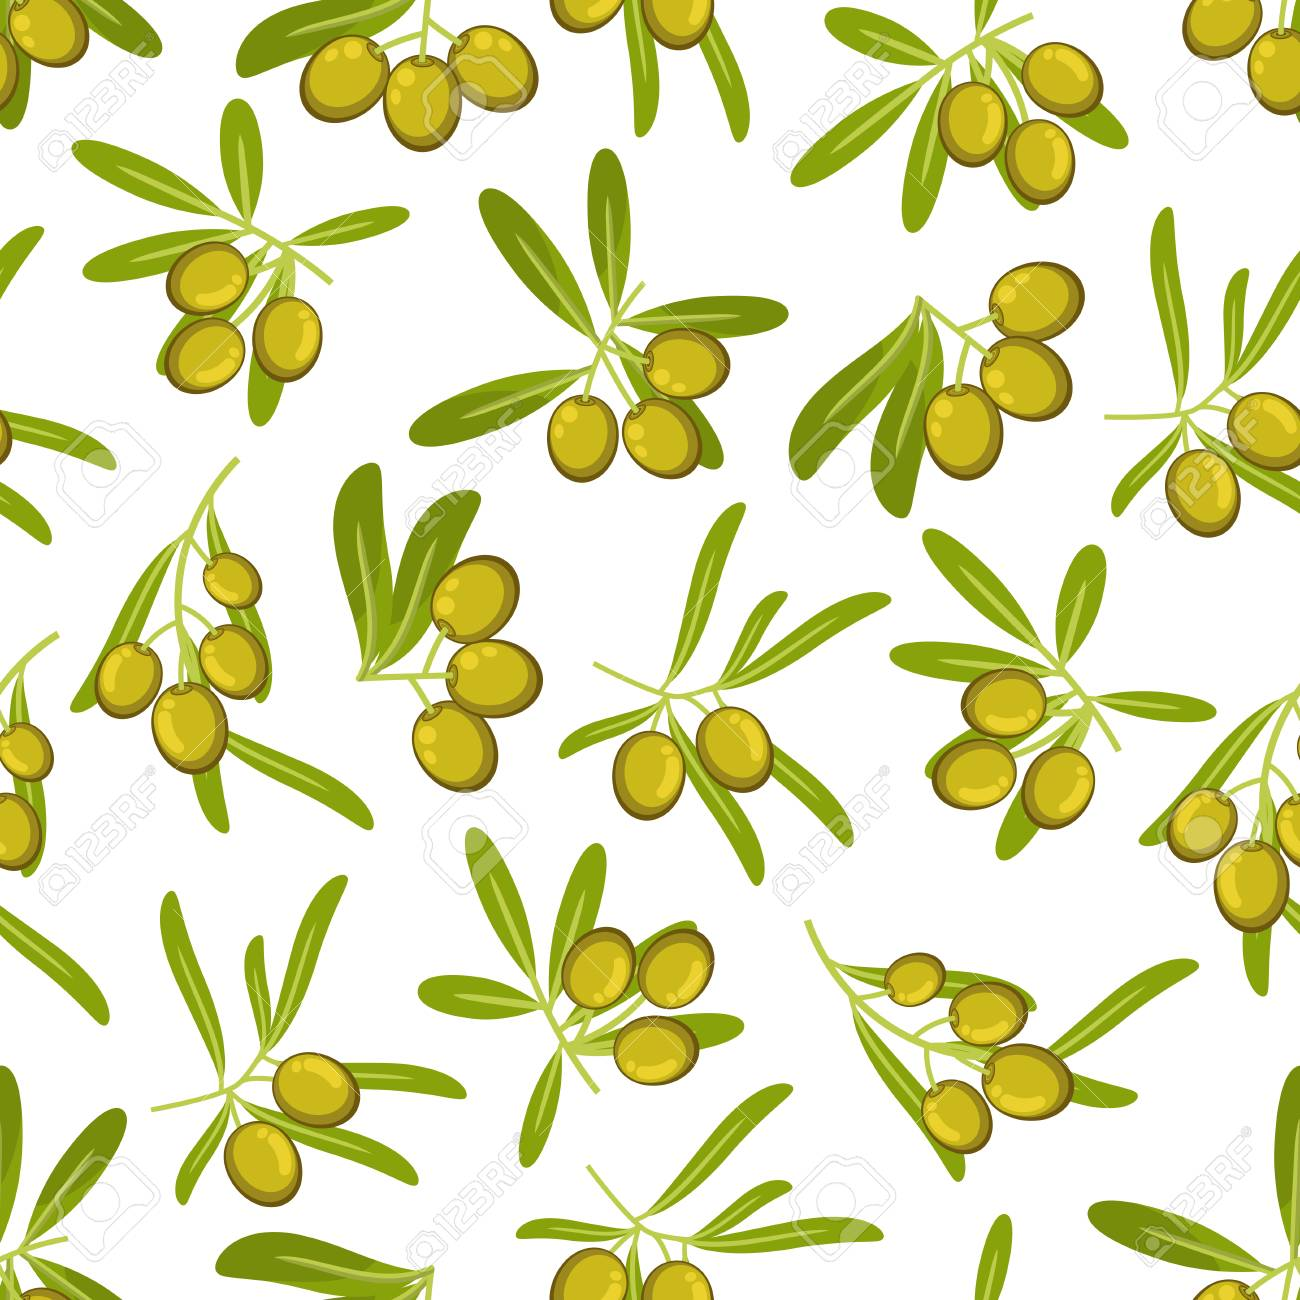 Olives Seamless Pattern Background. Green Olive Branch With Leaves ...